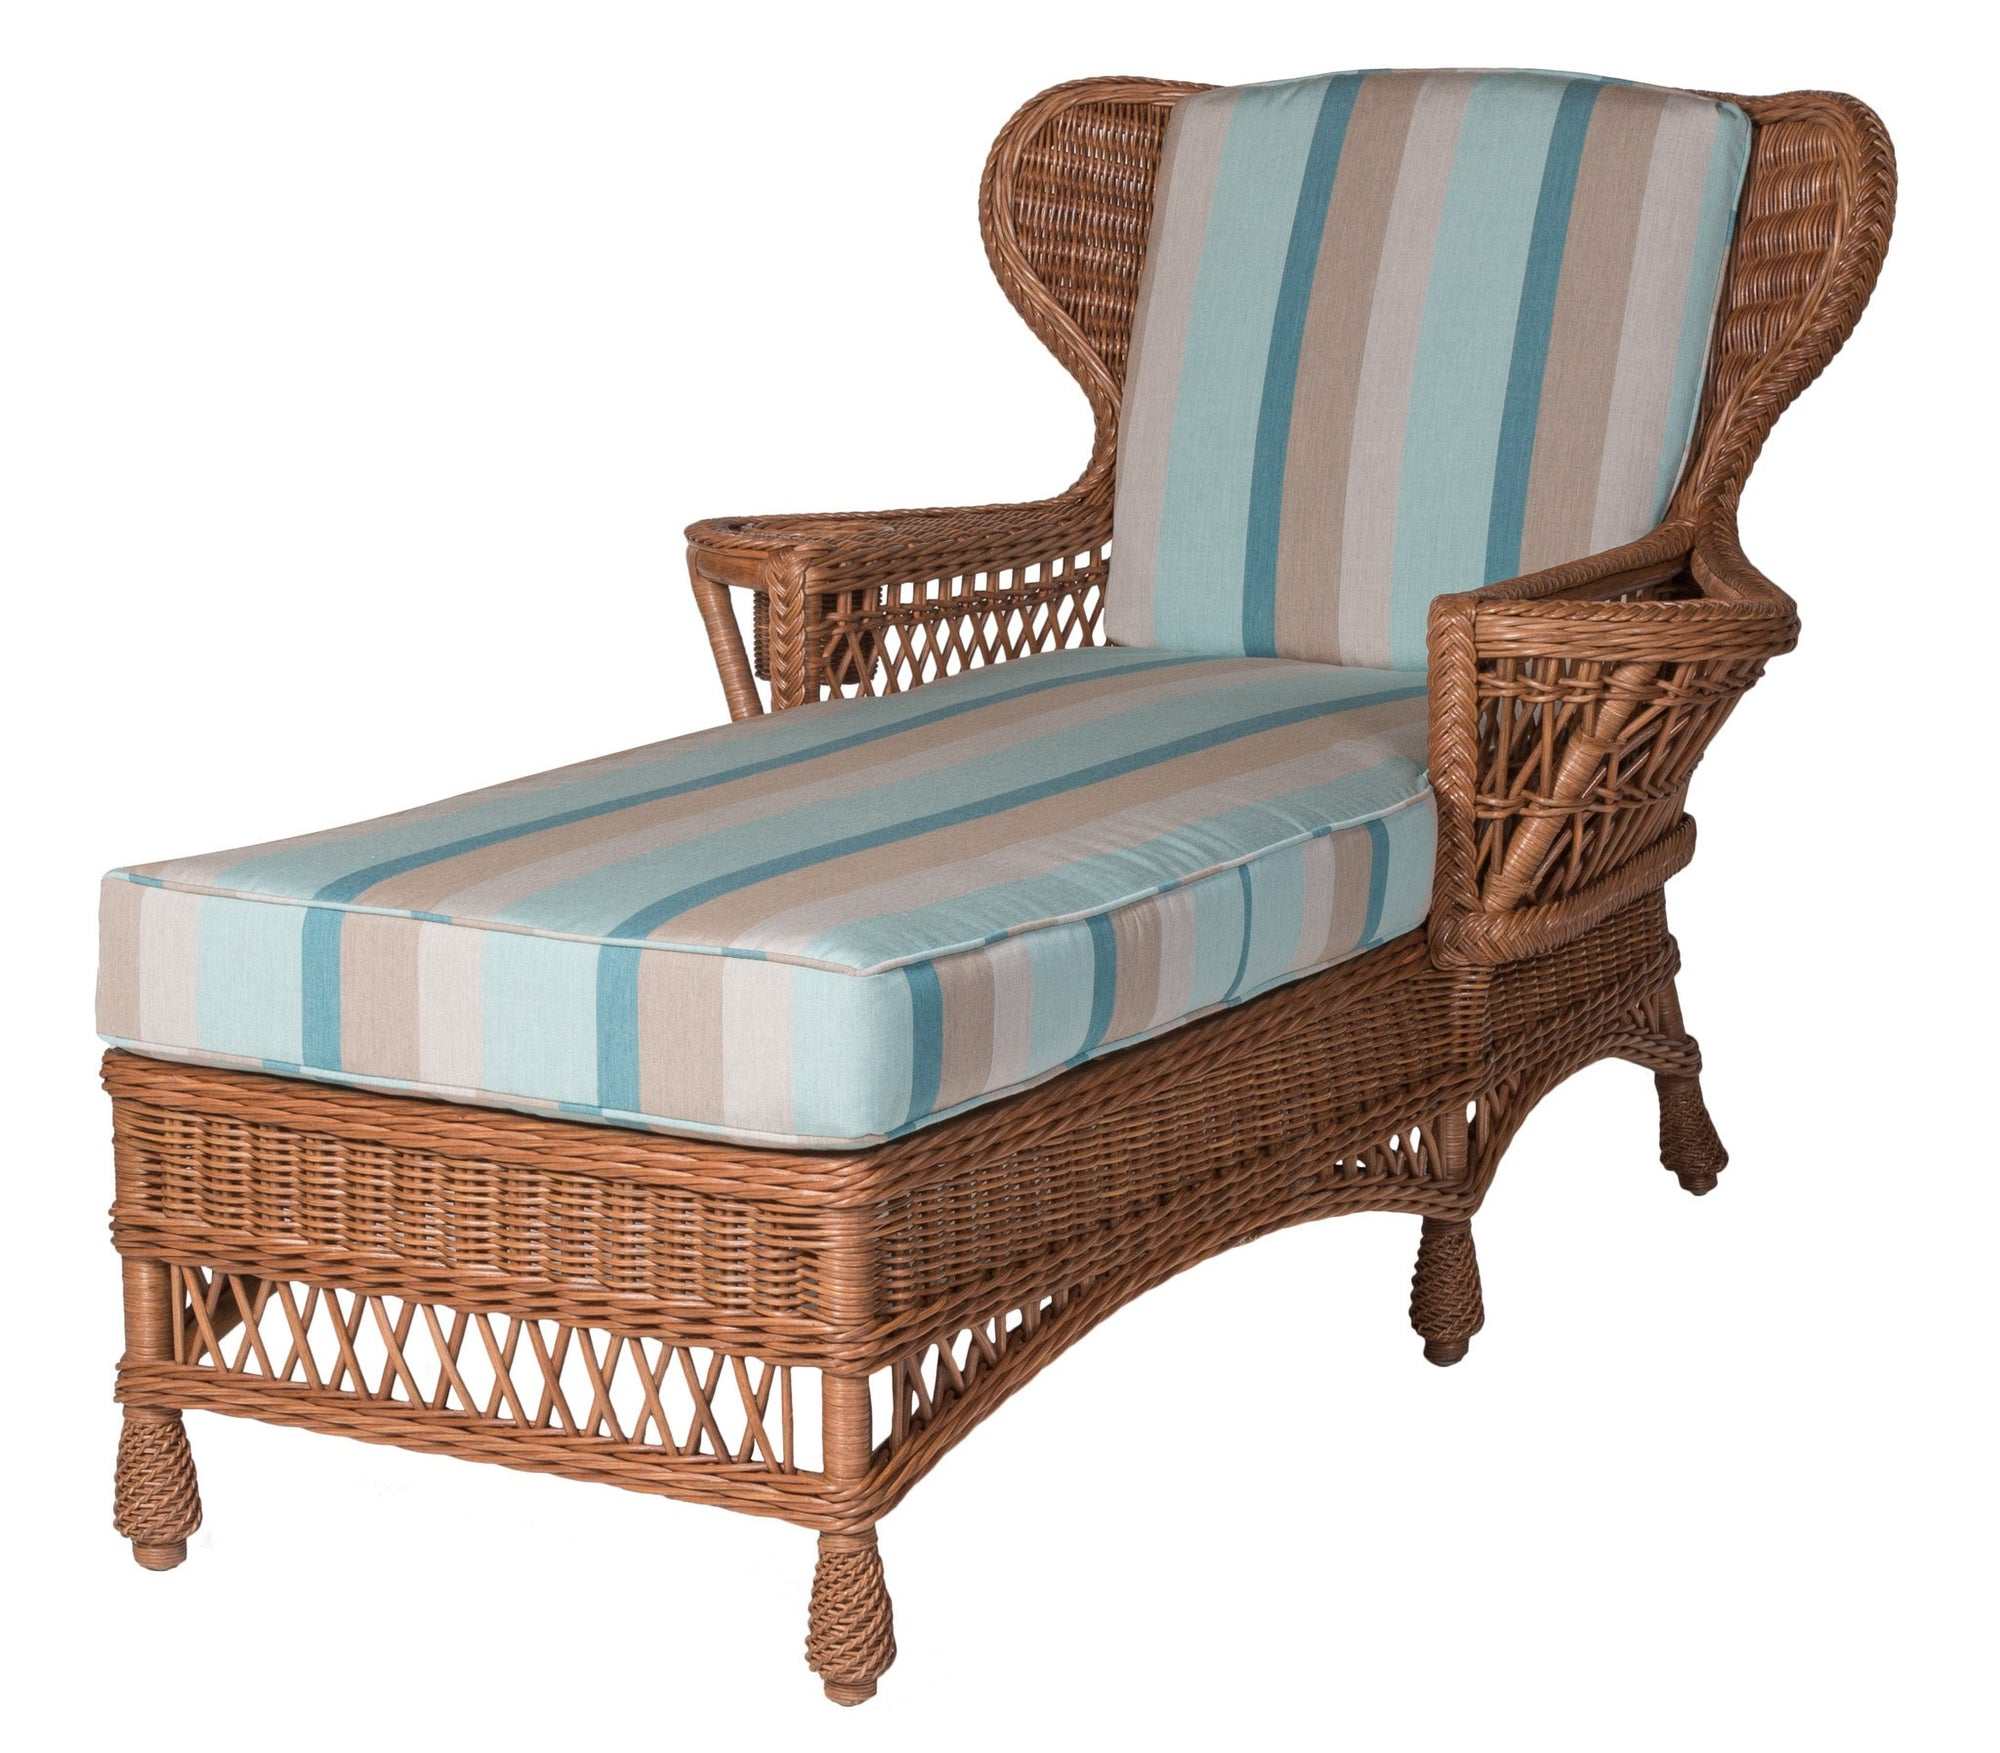 Designer Wicker & Rattan By Tribor Concord Chaise by Designer Wicker from Tribor Lounge Chair - Rattan Imports